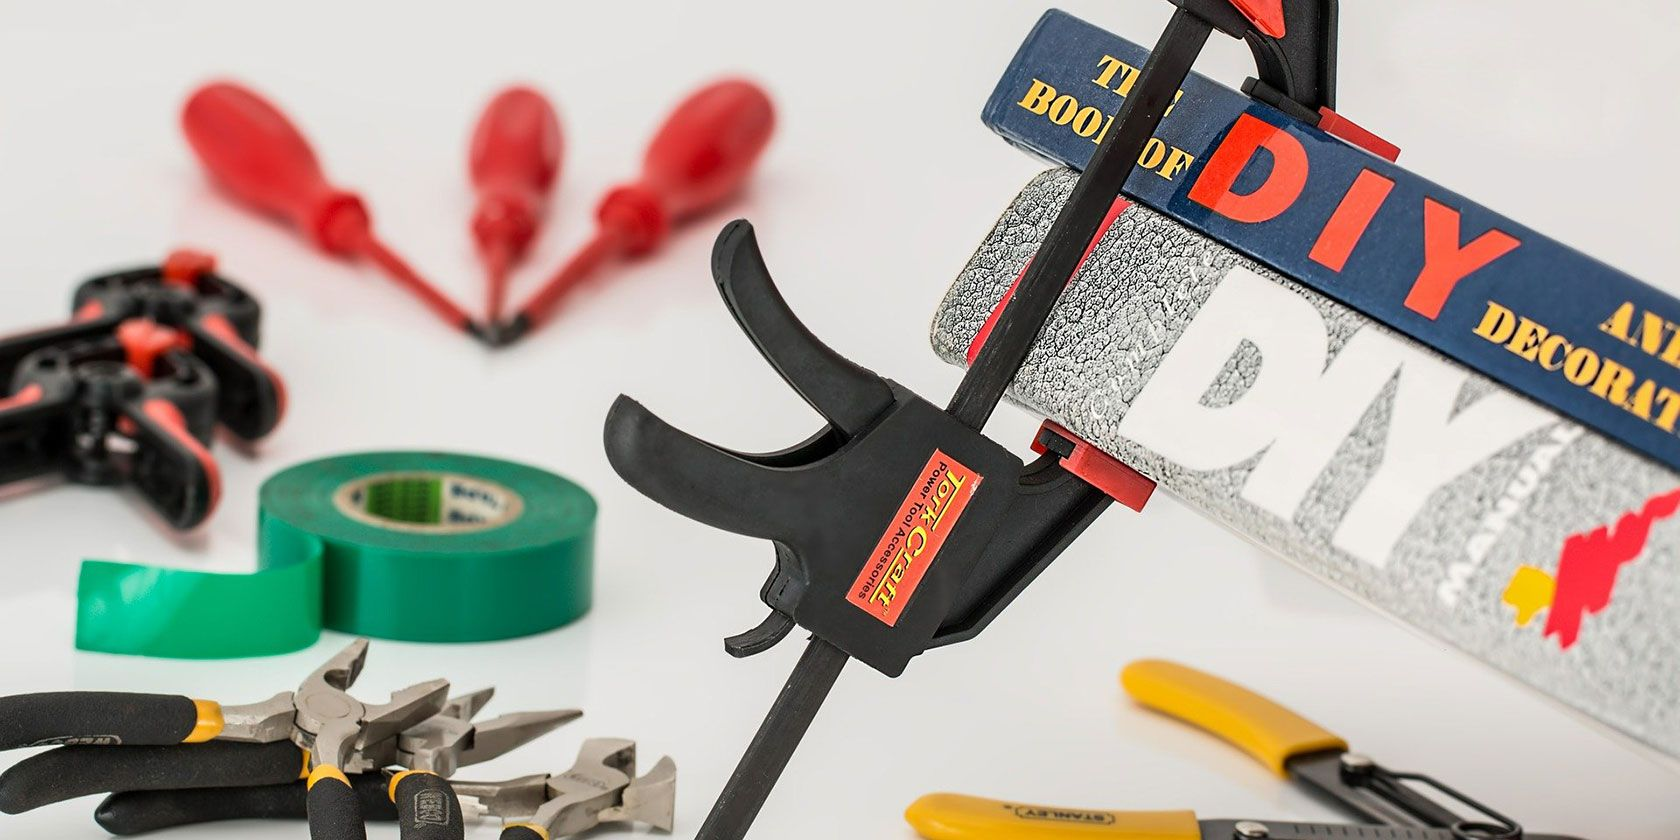 DIY Resources to Repair Appliances and Fix Common Problems at Home